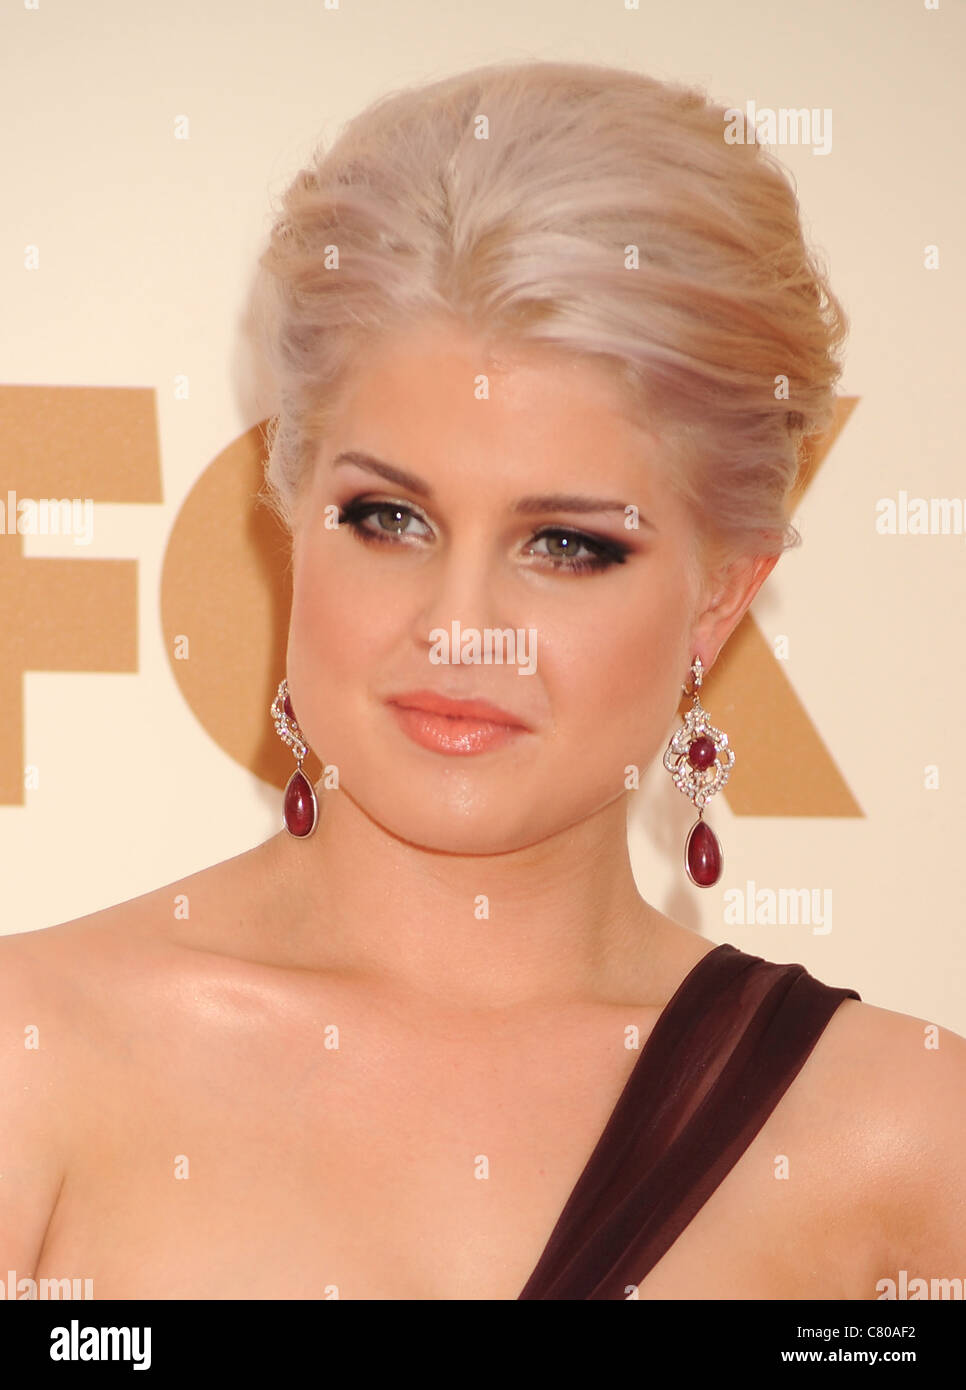 KELLY OSBOURNE  US singer and film actress in September 2011. Photo jeffrey Mayer - Stock Image